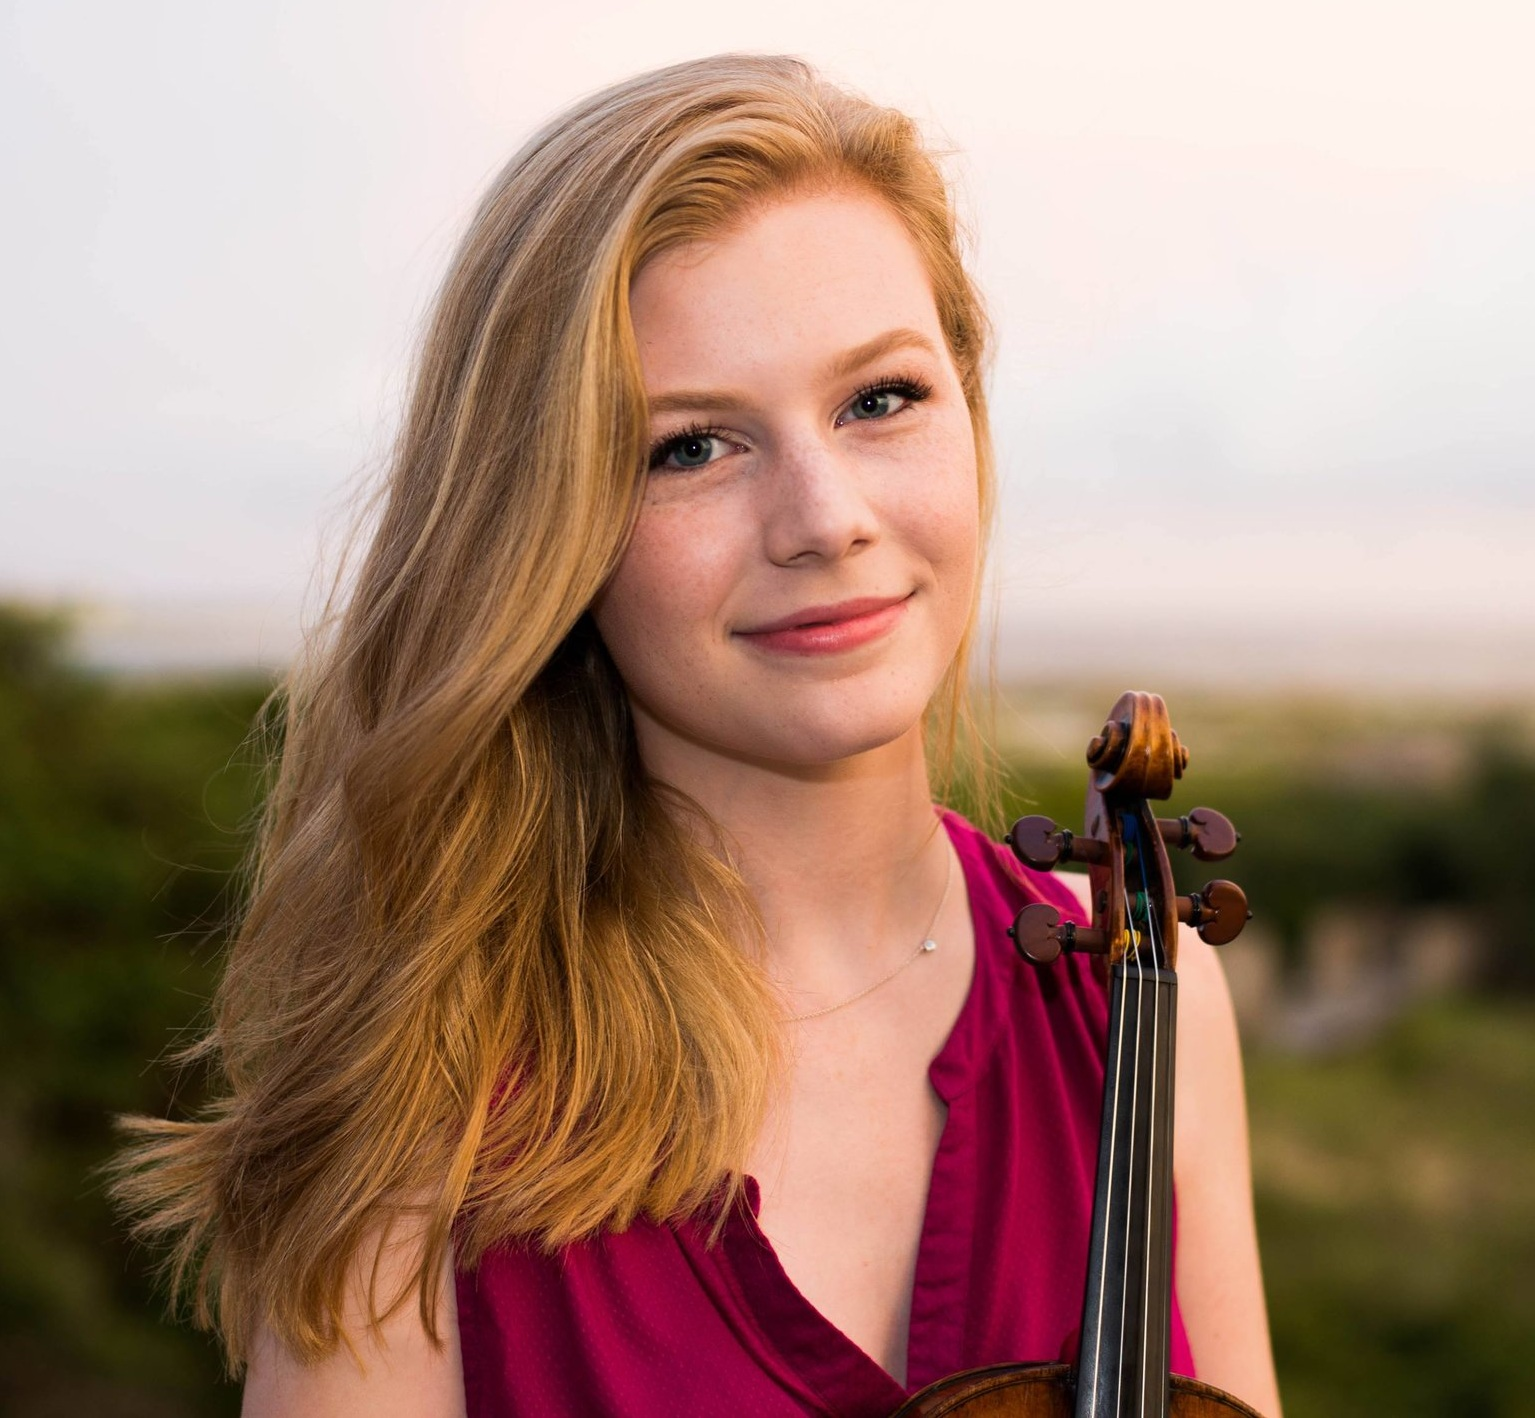 Kate Arndt, violin*